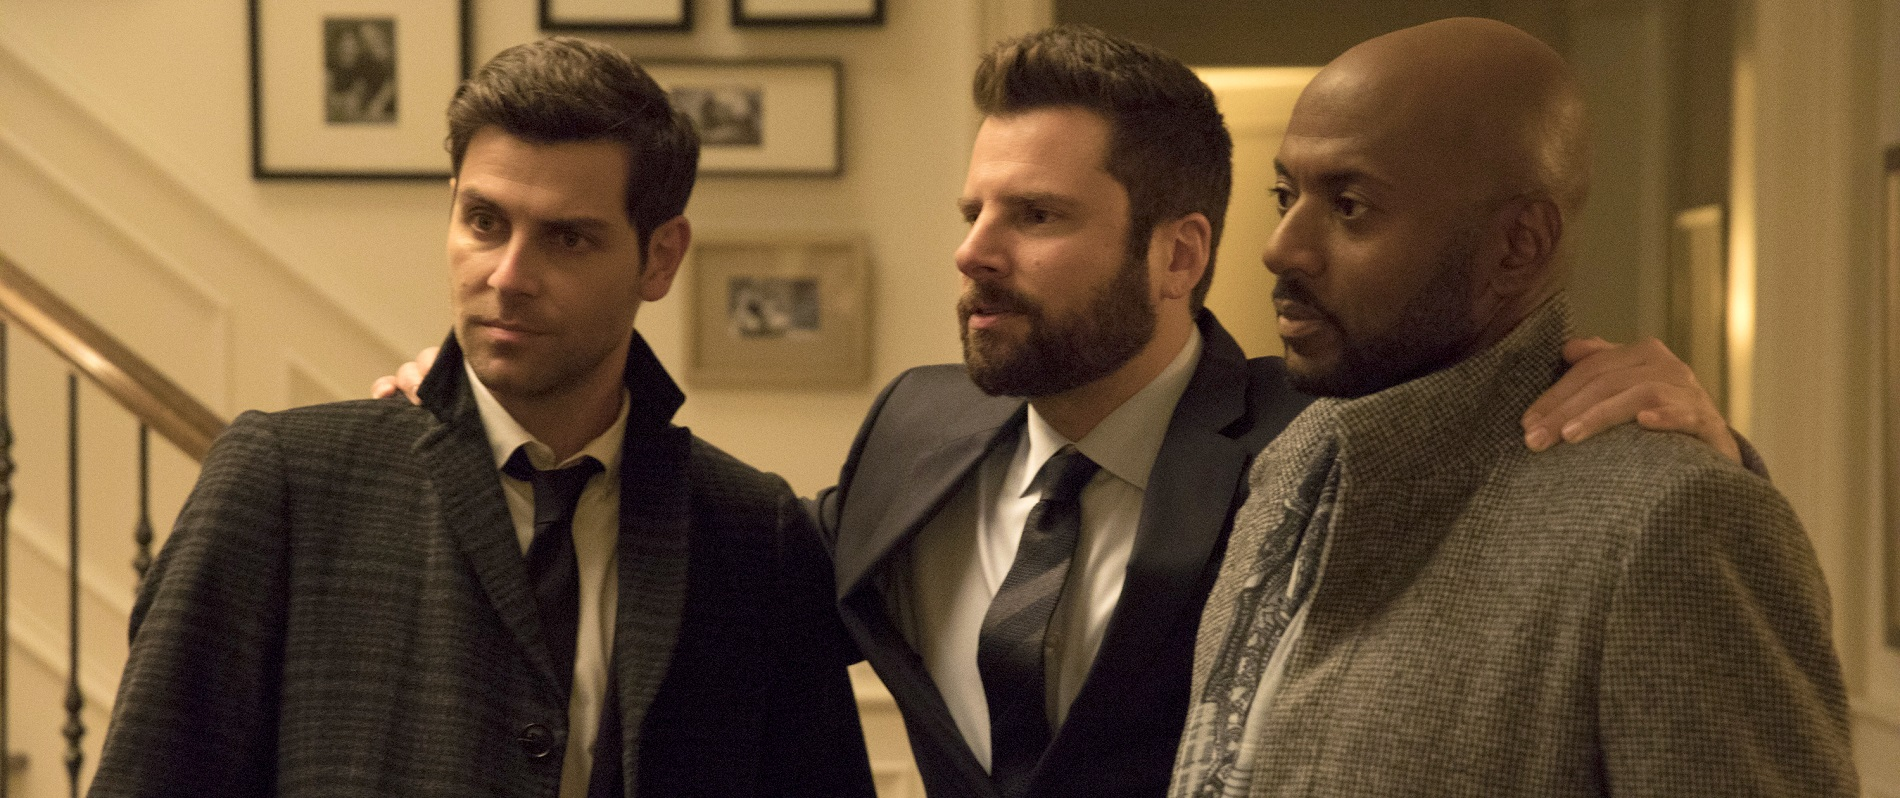 About ABC's 'A Million Little Things,' Alan Pergament says he 'really, really wanted to like this series. But it tries too hard to move viewers emotionally and has several other little things that seem fake.' Among the shows stars are, from left: David Giuntoli, James Roday and Romany Malco. (Photo by Jack Rowand/ABC)